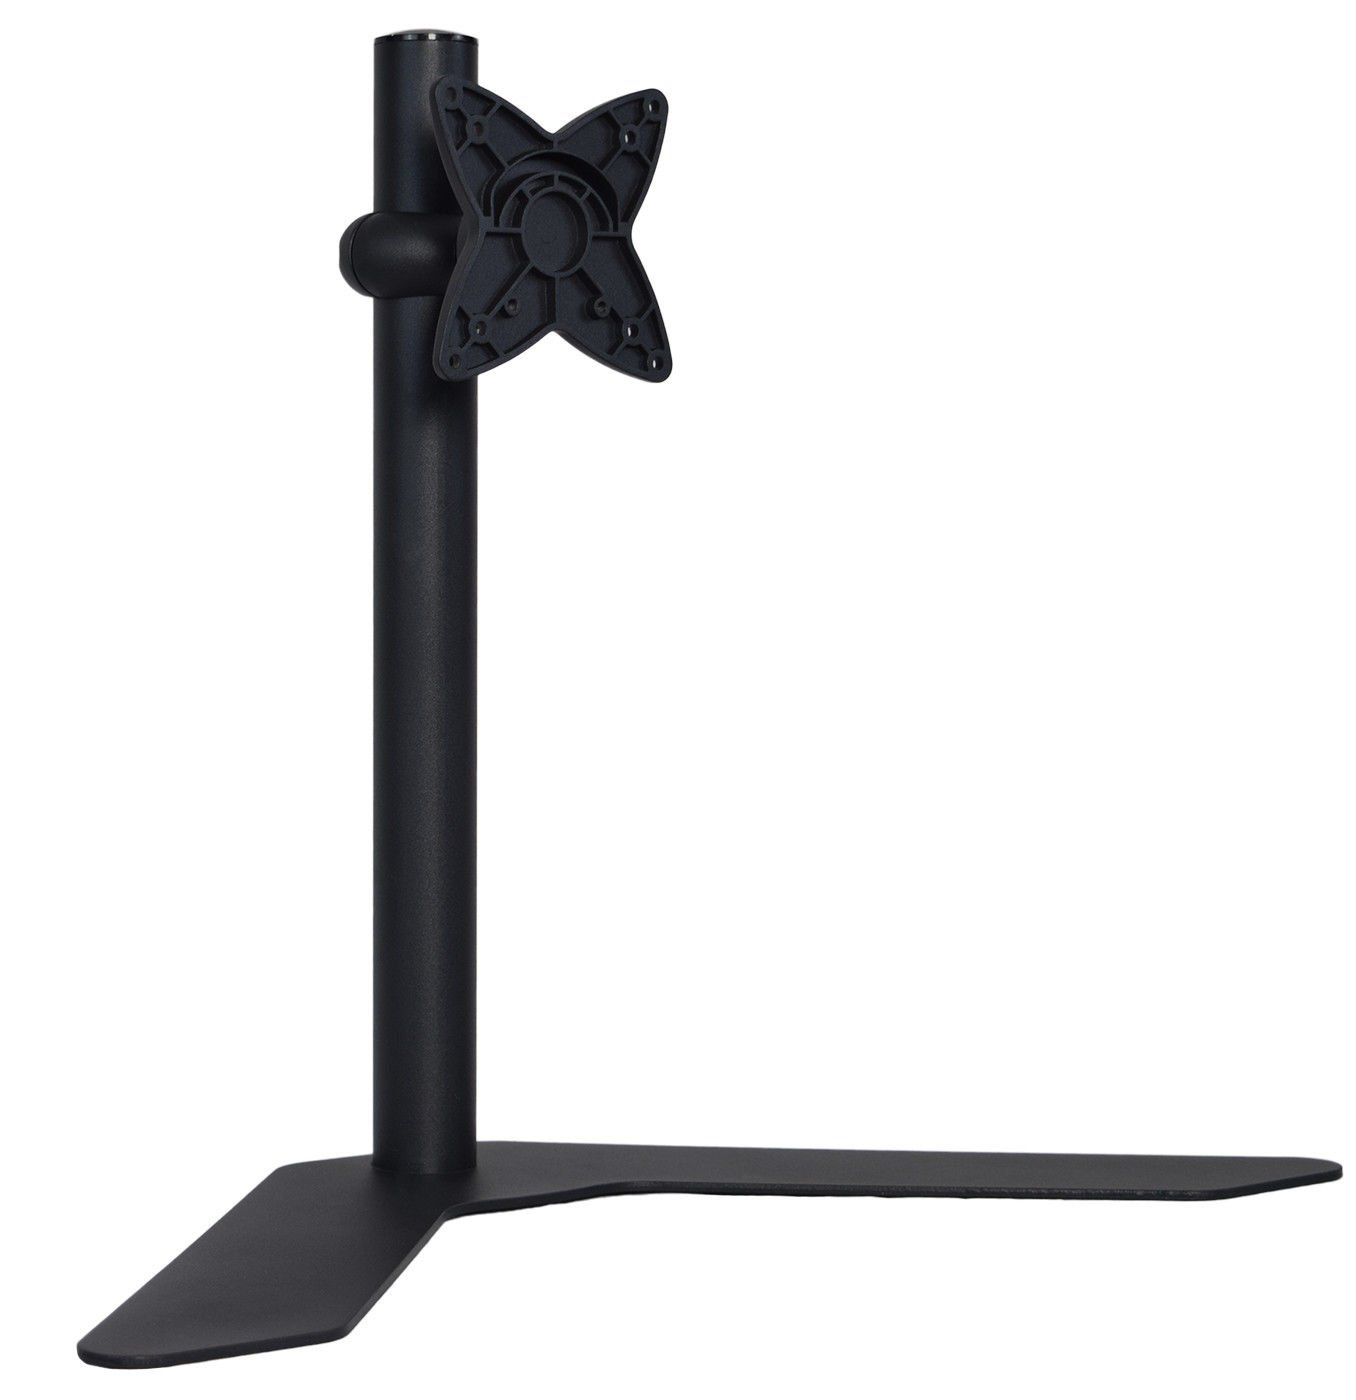 Single LCD Monitor Desk Stand Fully Adjustable/Til t for 1 Screen up to 27''